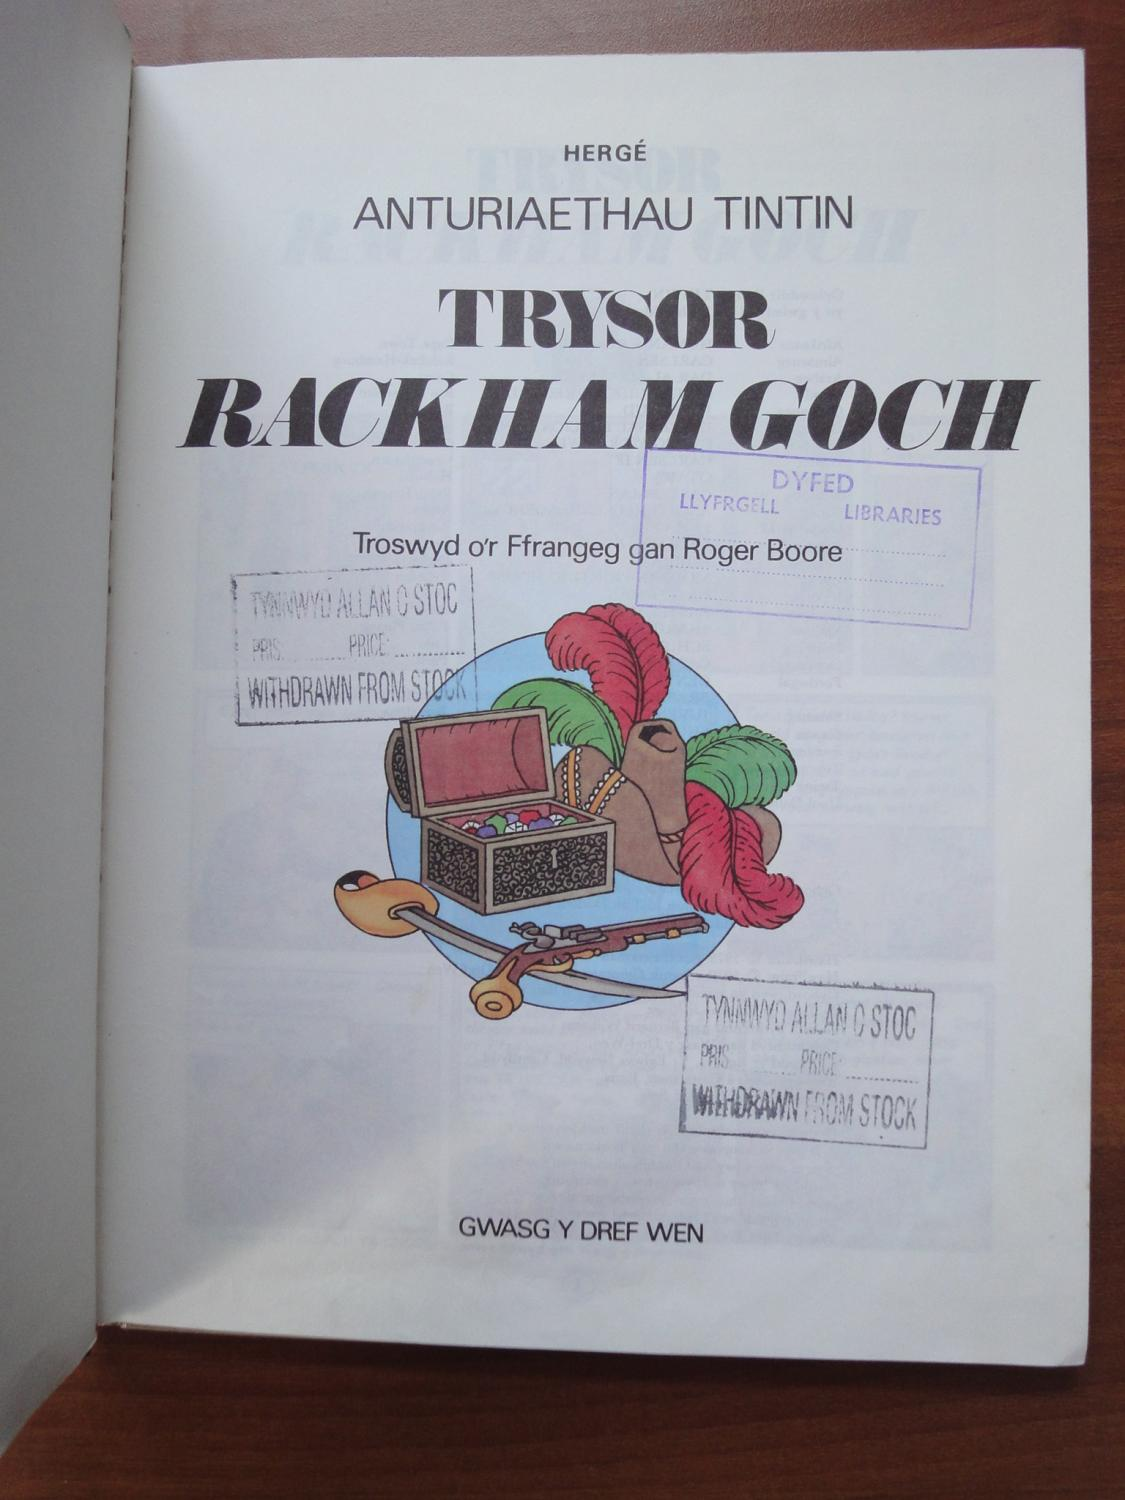 This is a book title page in Welsh from AbeBooks.com, which I think is a good example of what it would be like to be illiterate as an English speaker.